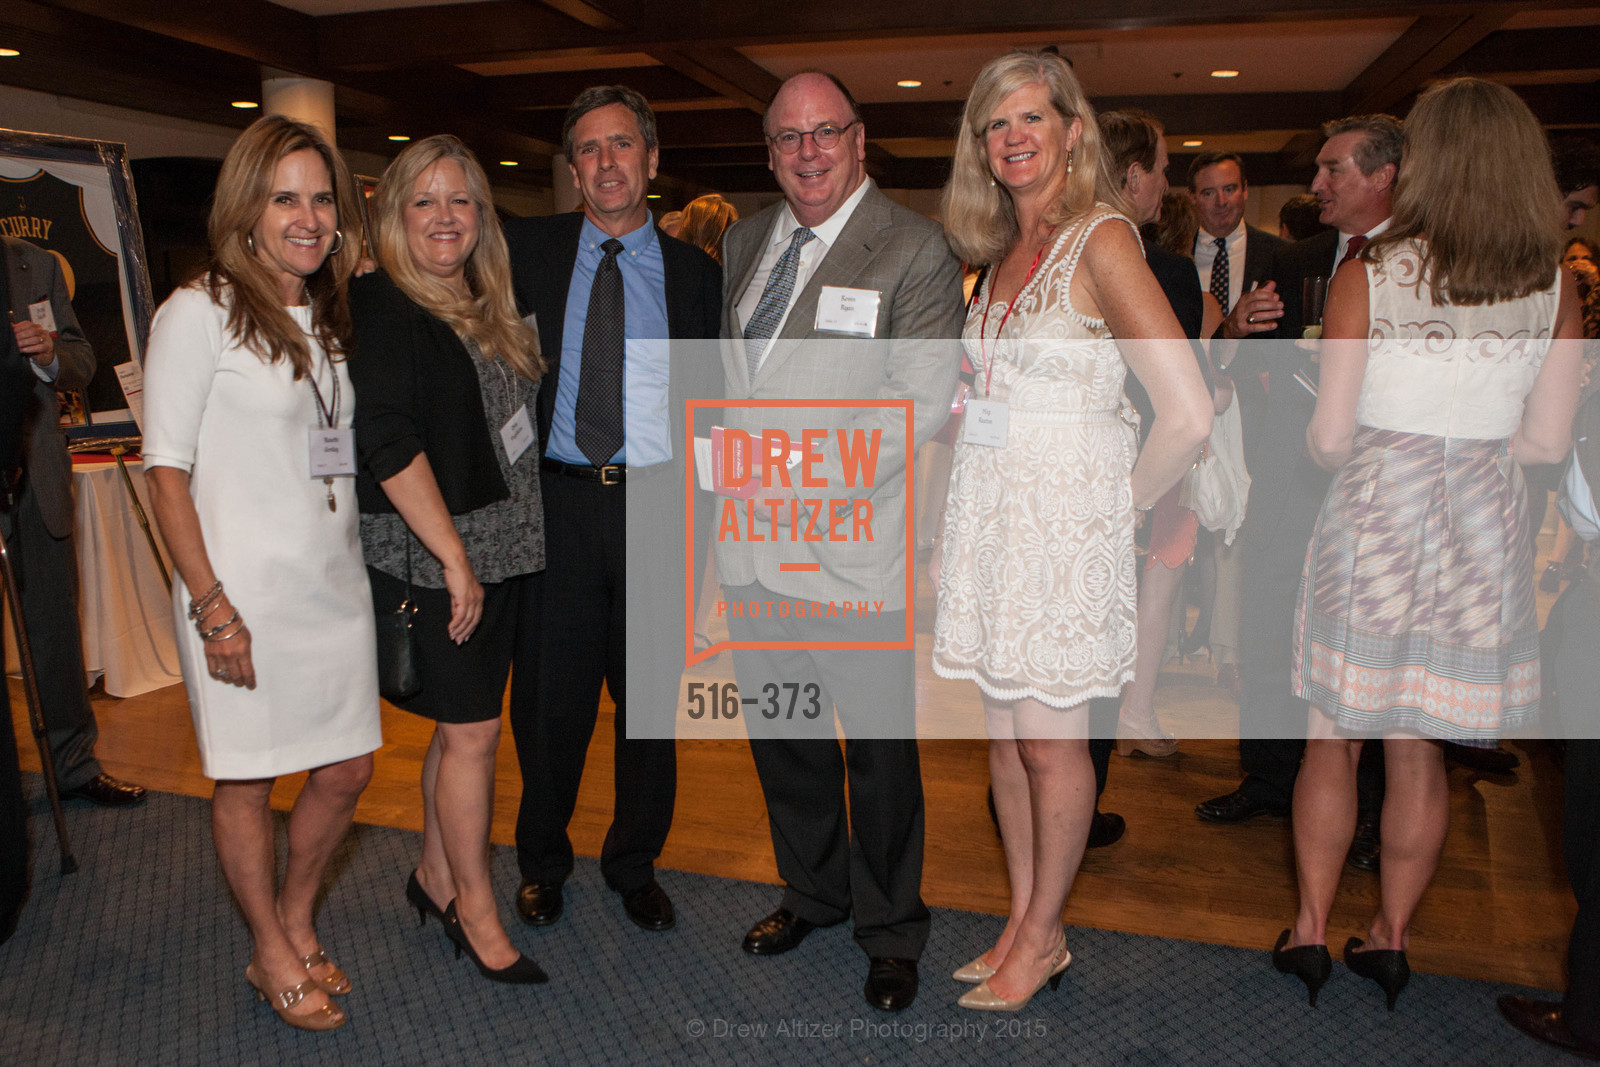 Nanette Gordon, Chris Vogelheim, Tom Vogelheim, Kevin Ryan, Meg Ruxton, Sovereign Order of Malta Presents: A Knight for Champions, 7th Annual Silver Chalice Awards Dinner, St. Francis Yacht Club. 99 Yacht Rd, October 13th, 2015,Drew Altizer, Drew Altizer Photography, full-service agency, private events, San Francisco photographer, photographer california